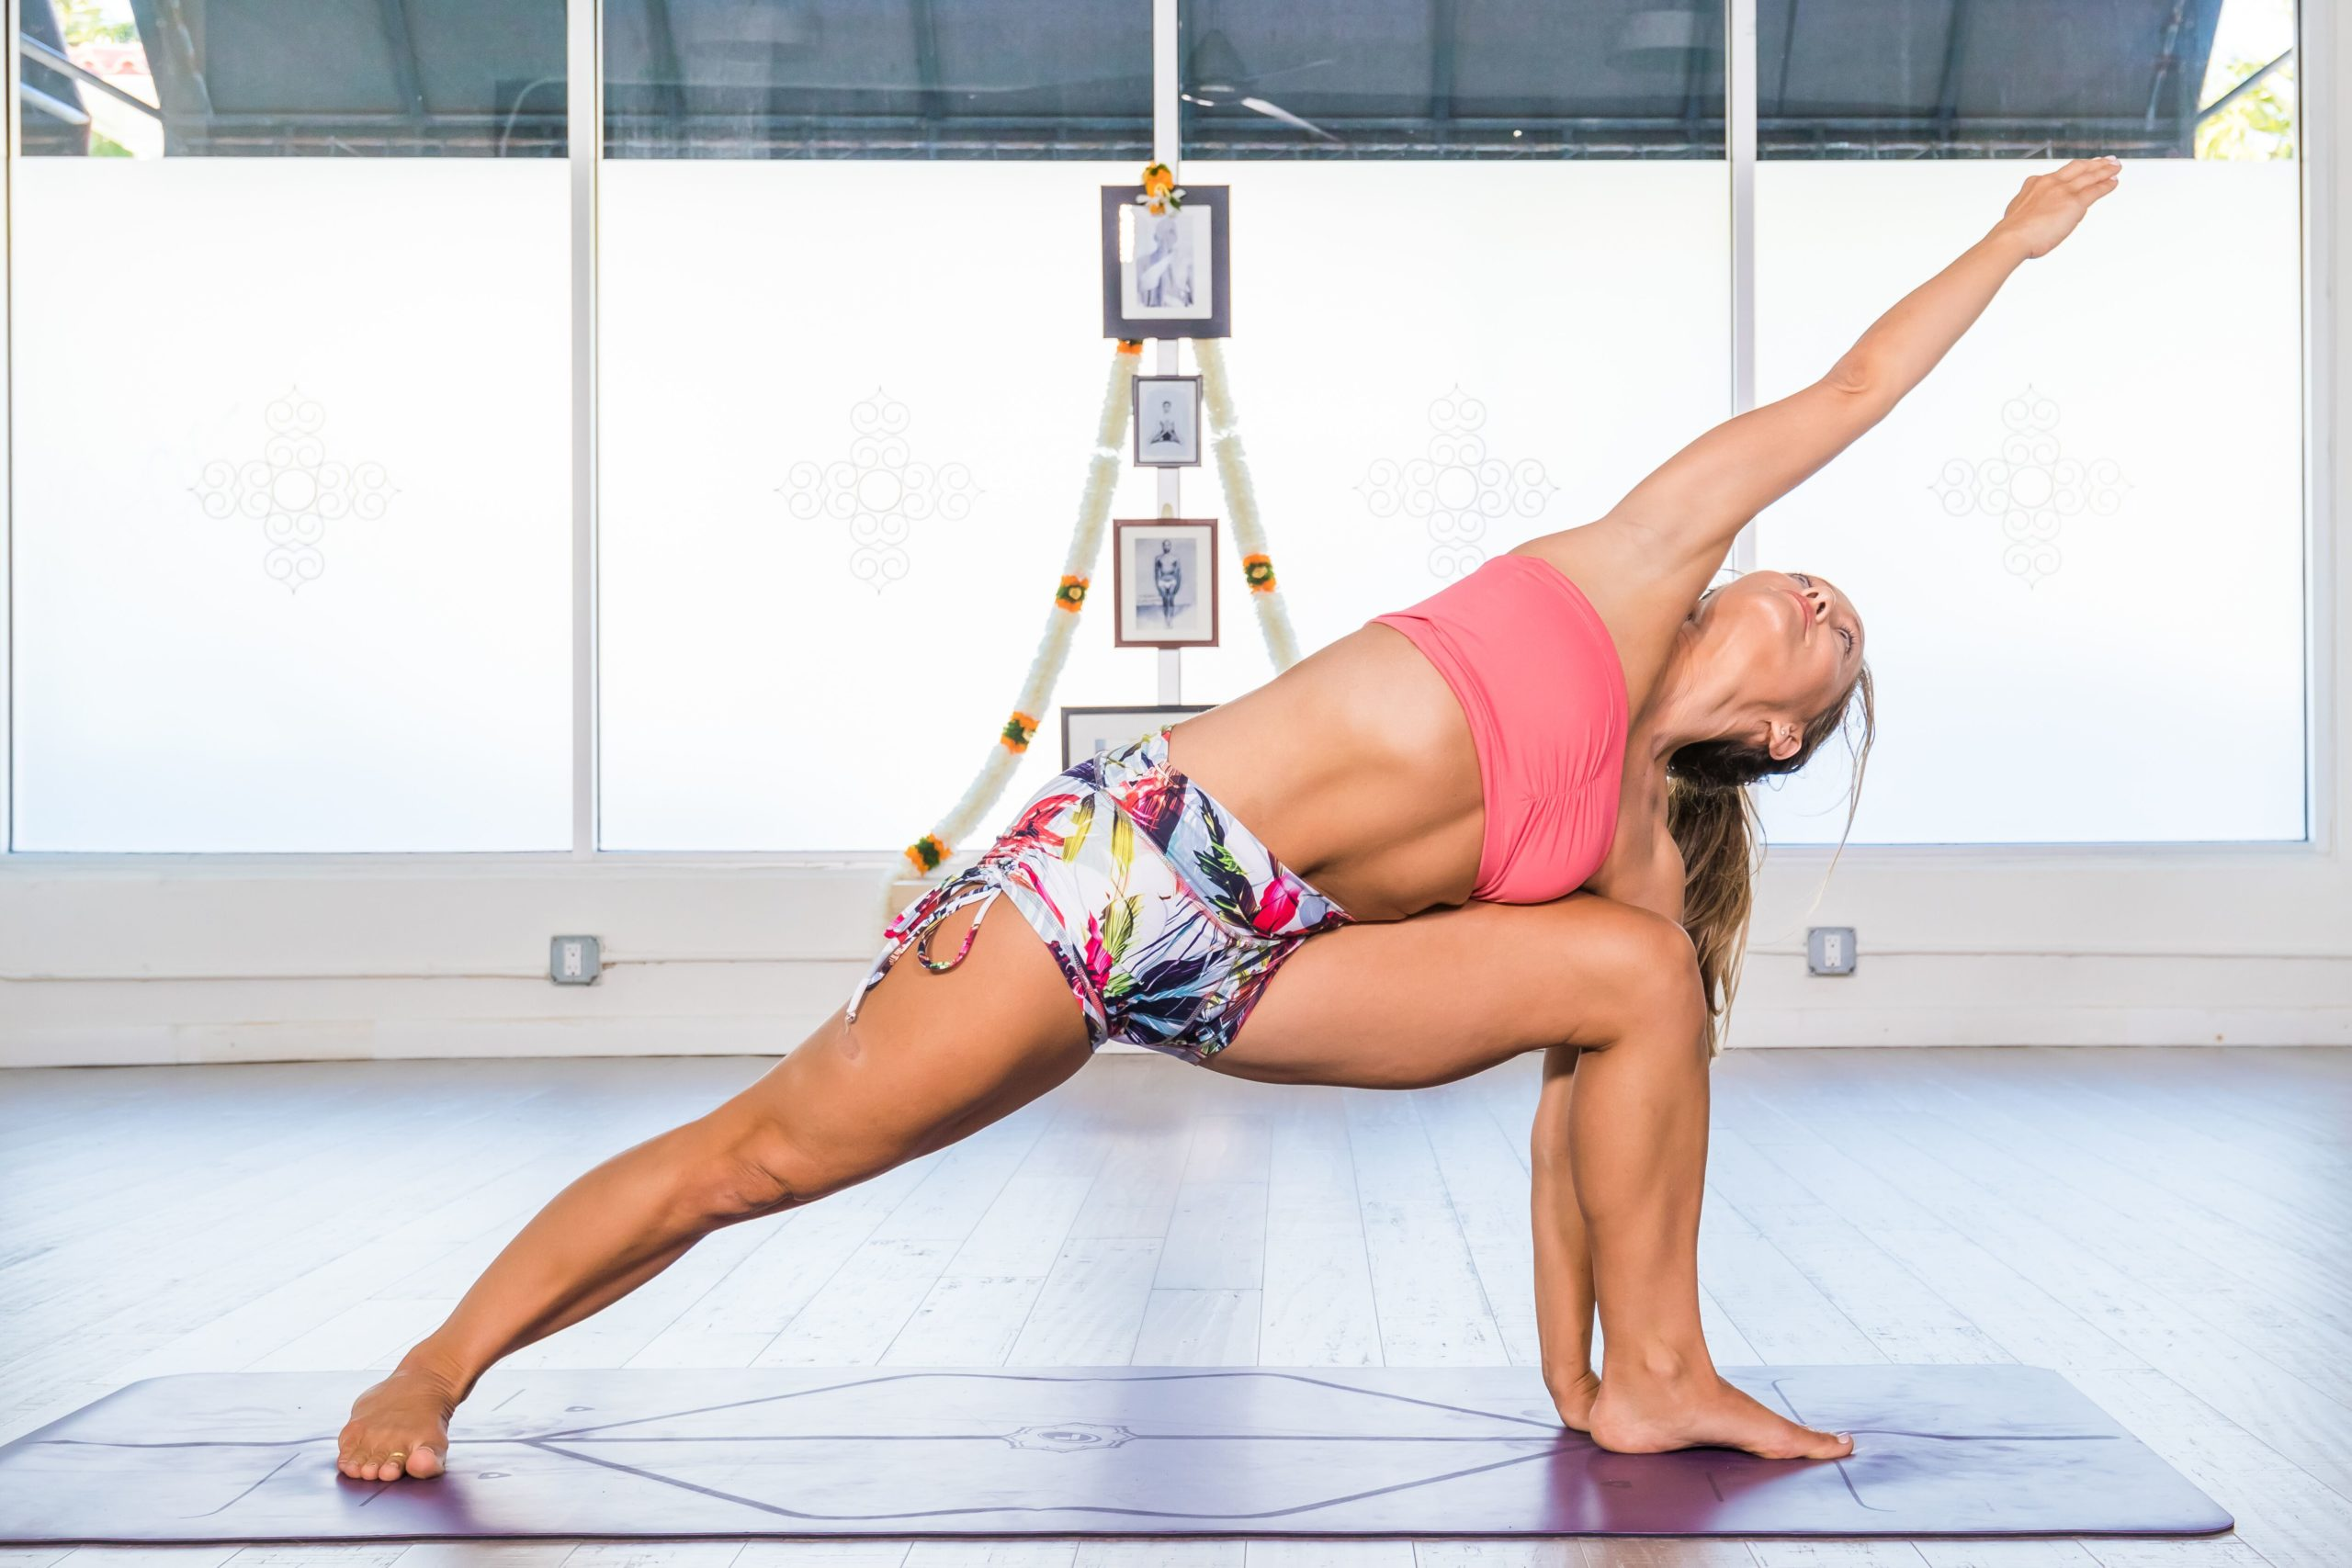 Encyclopedia of Yoga: Utthita Parsvakonasana (Extended Side Angle Pose)